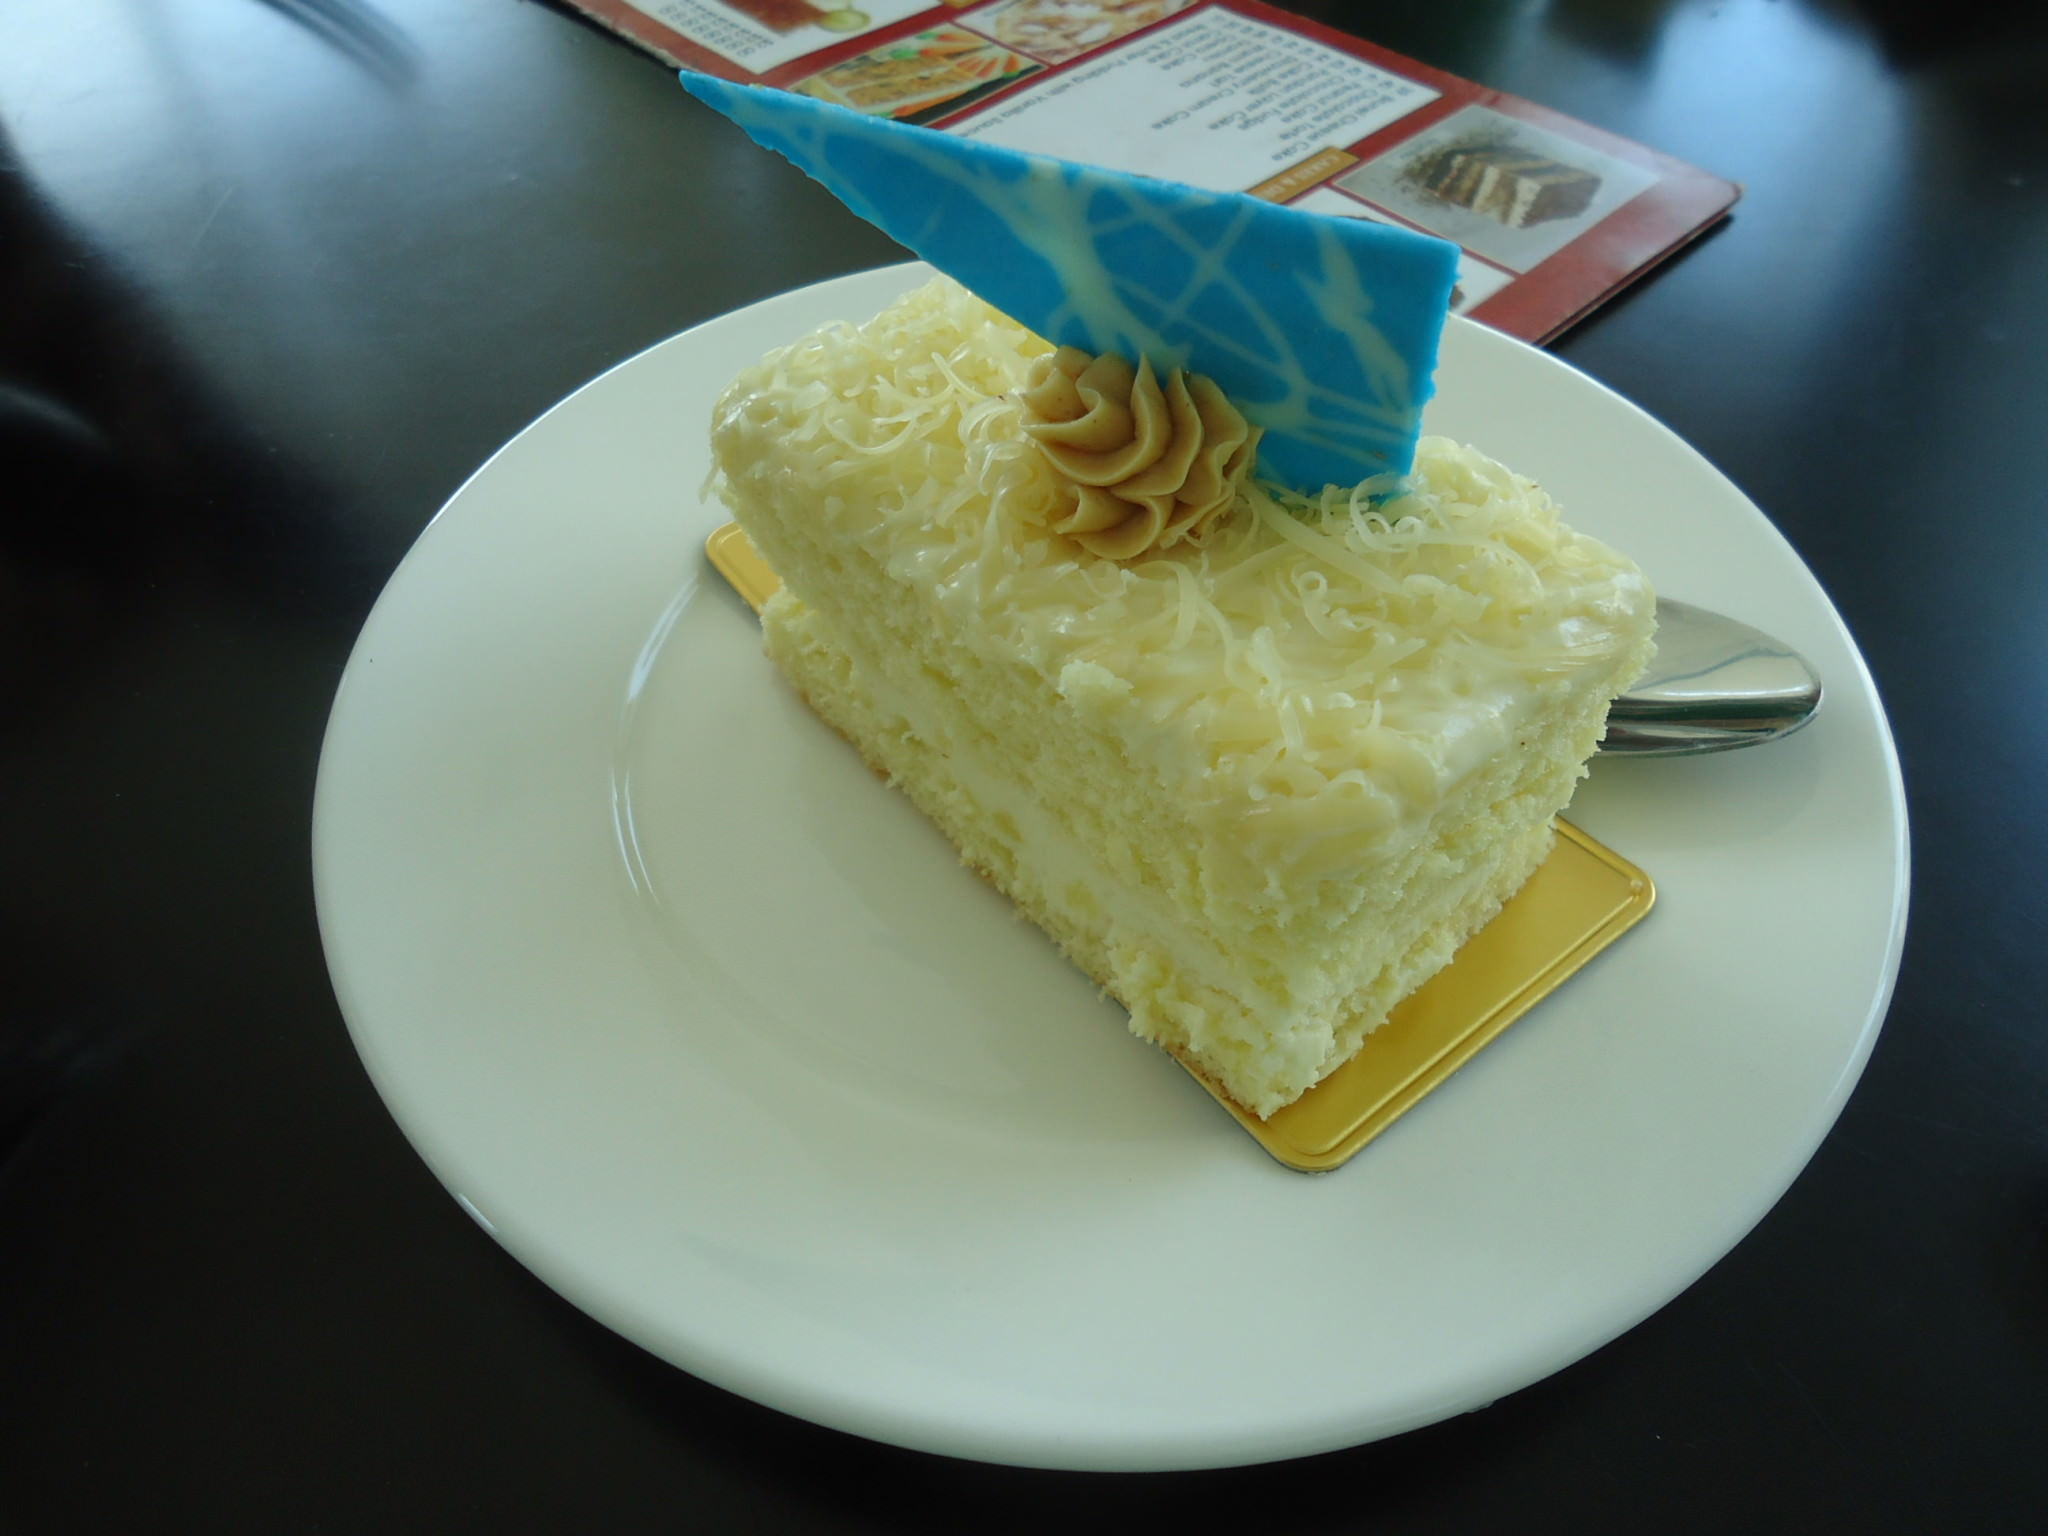 Brunei Cheesecake in Dermaga Cafe Bandar Seri Begawan Brunei